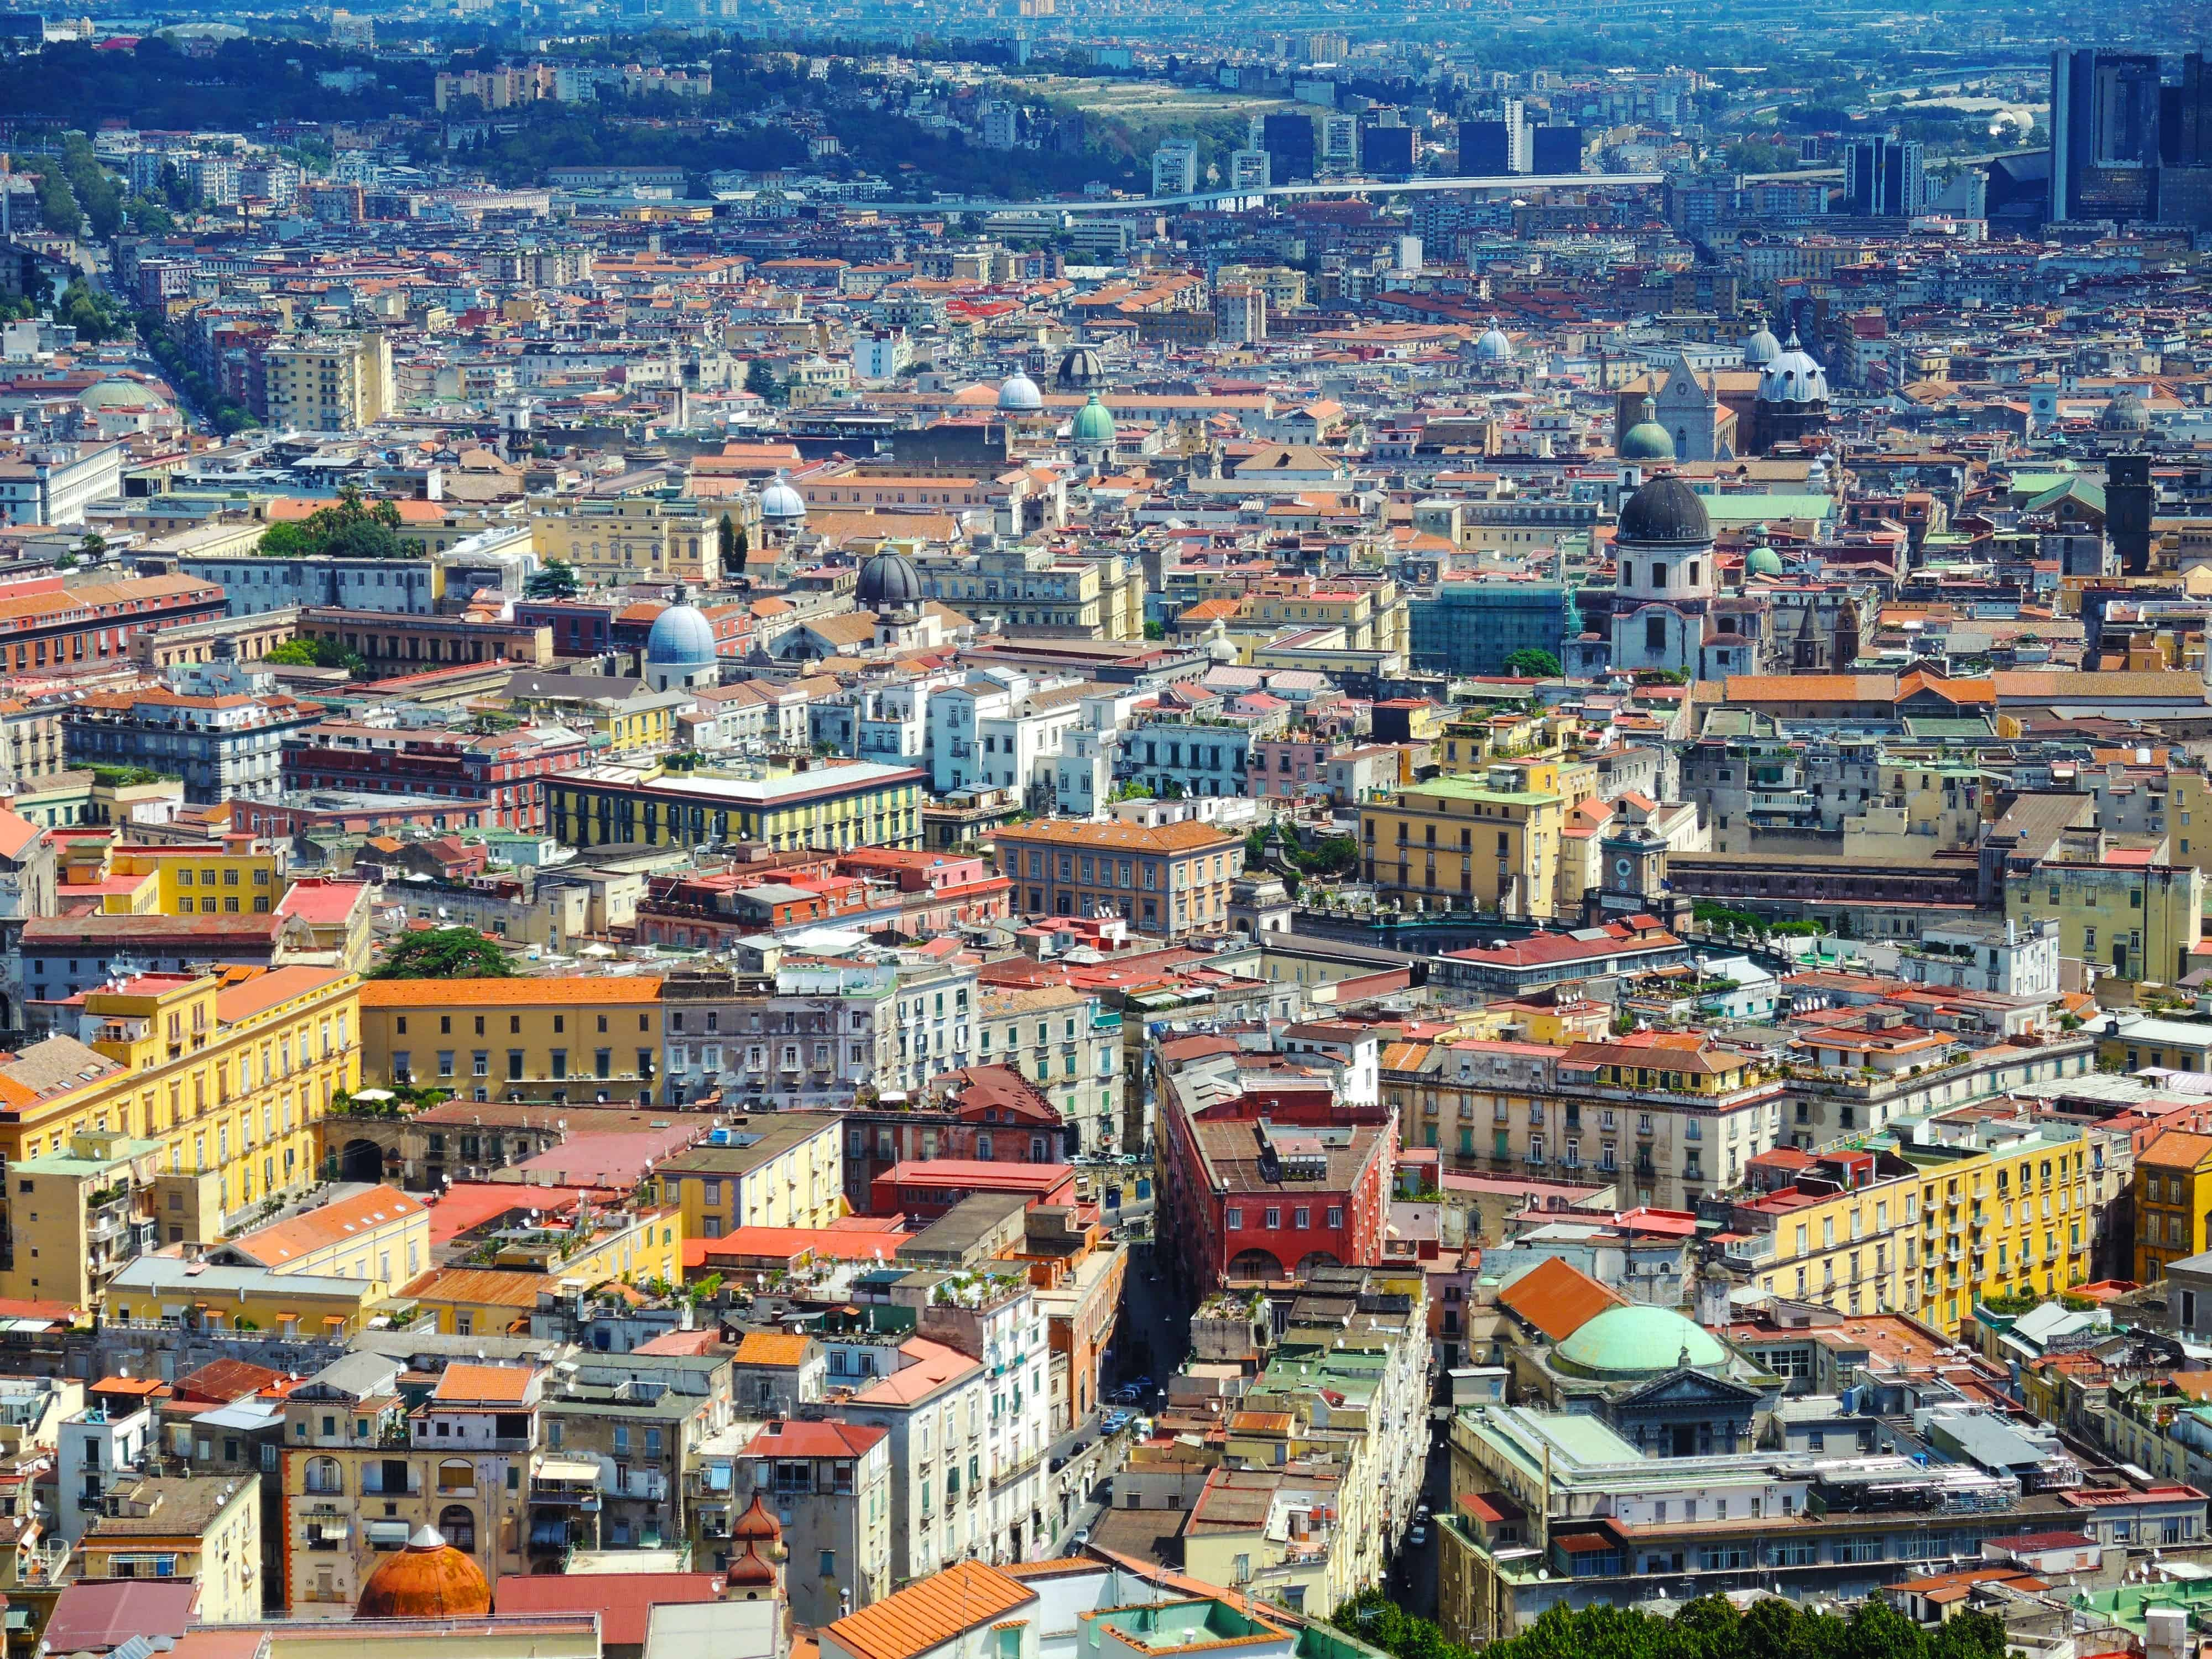 Naples - biggest city in southern Italy